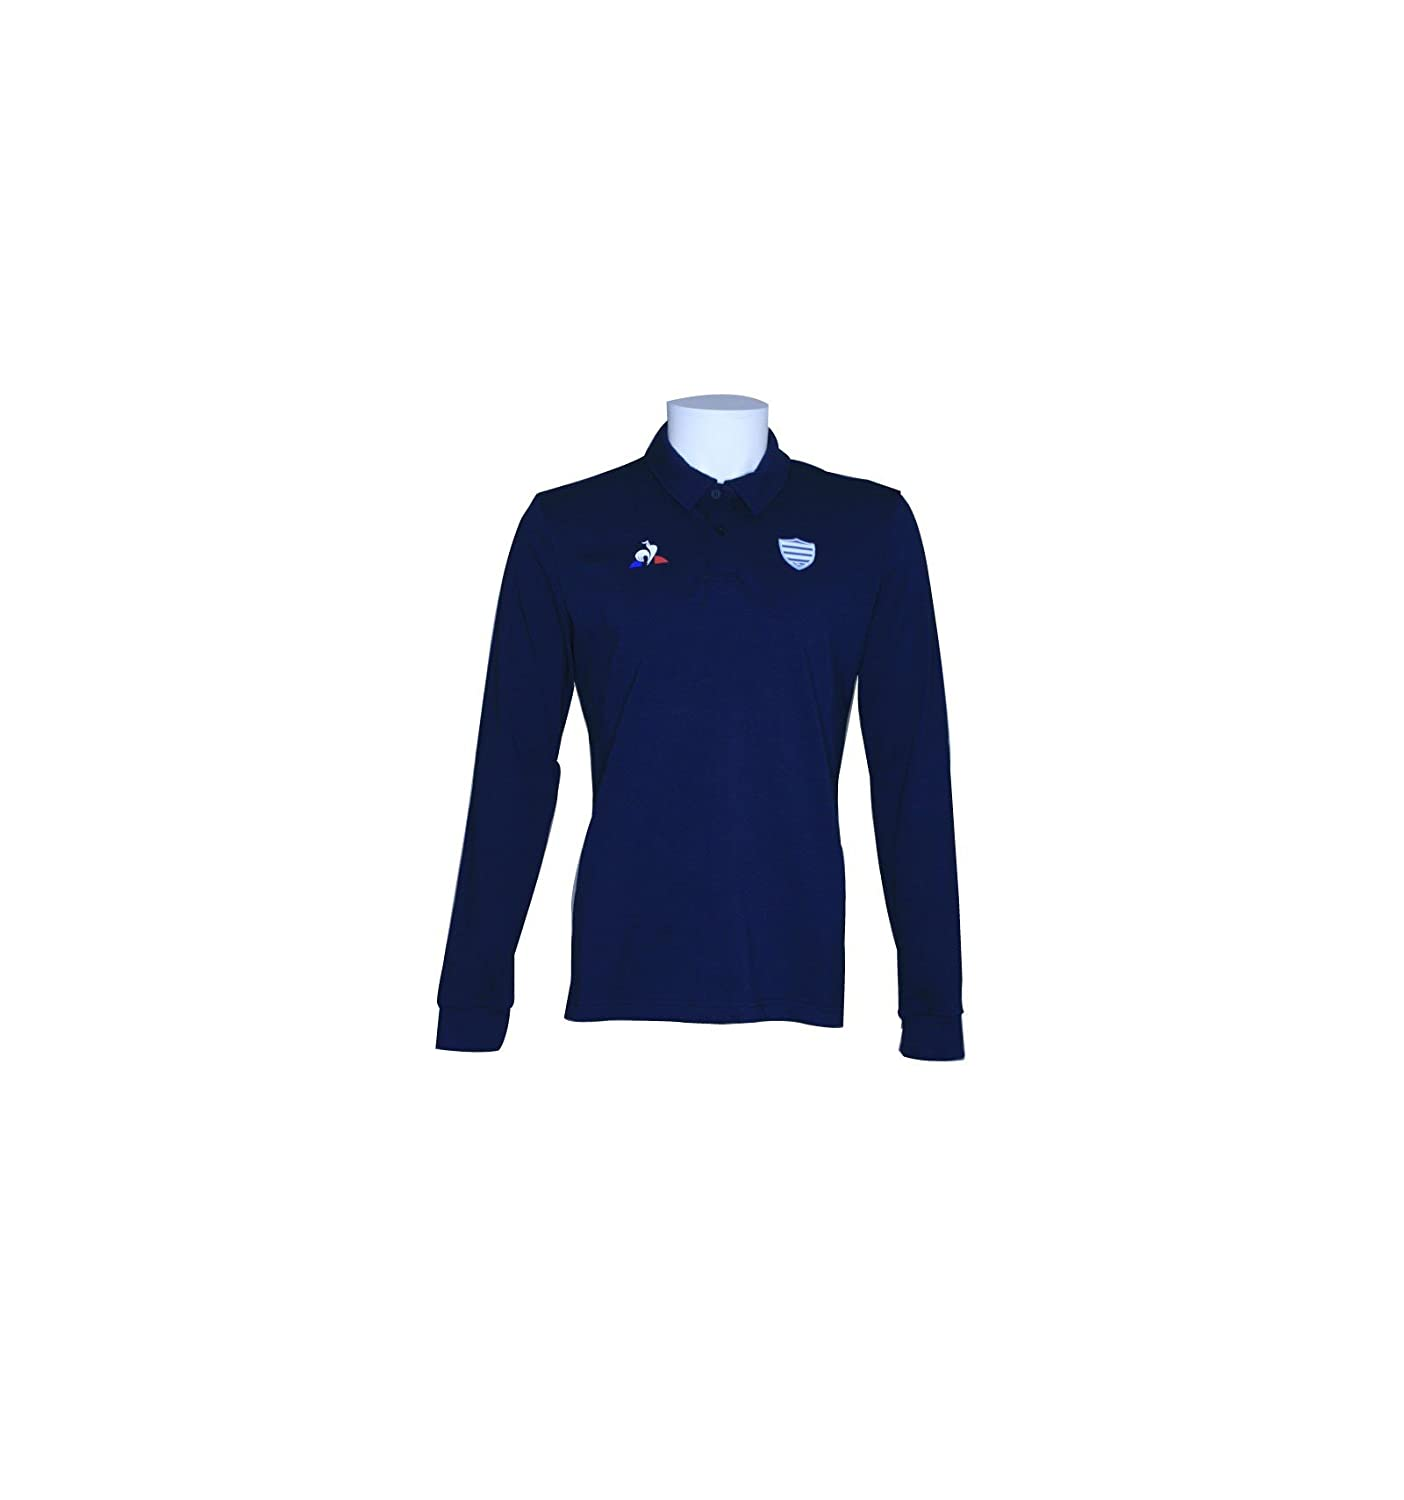 Le Coq Sportif Polo Racing 92 Dress Blue: Amazon.es: Ropa y accesorios